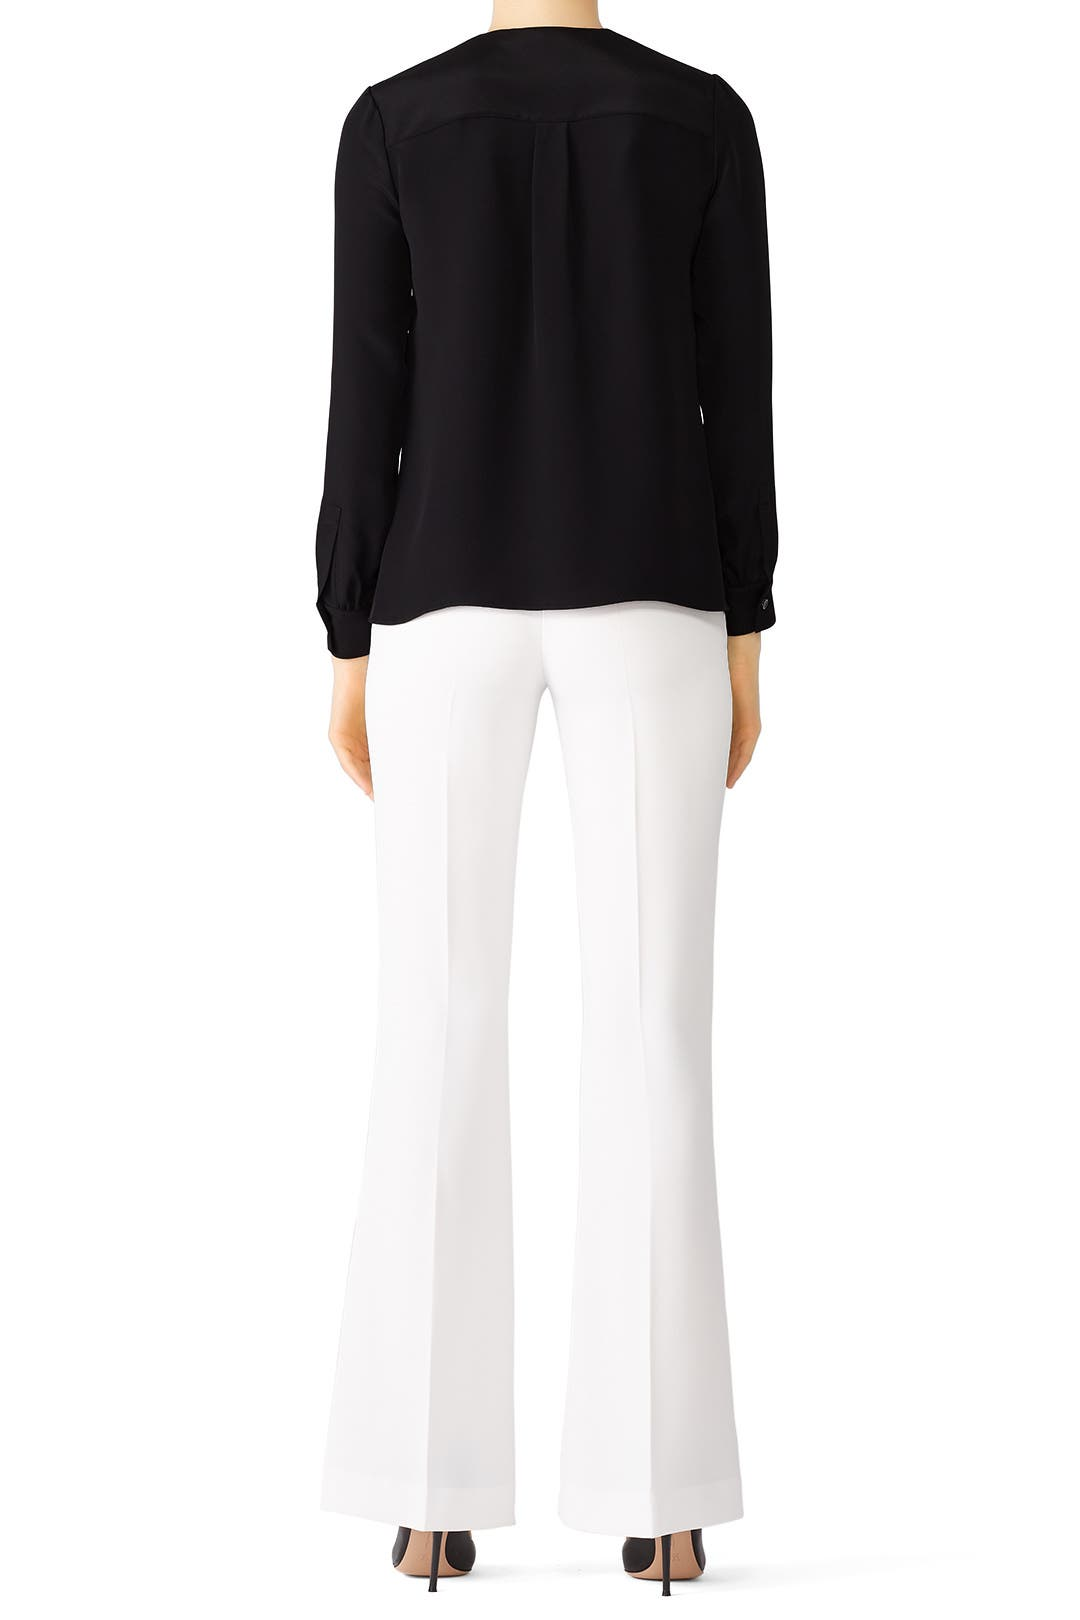 af1c20e1036ce Sara Lace Up Blouse by DEREK LAM for  150